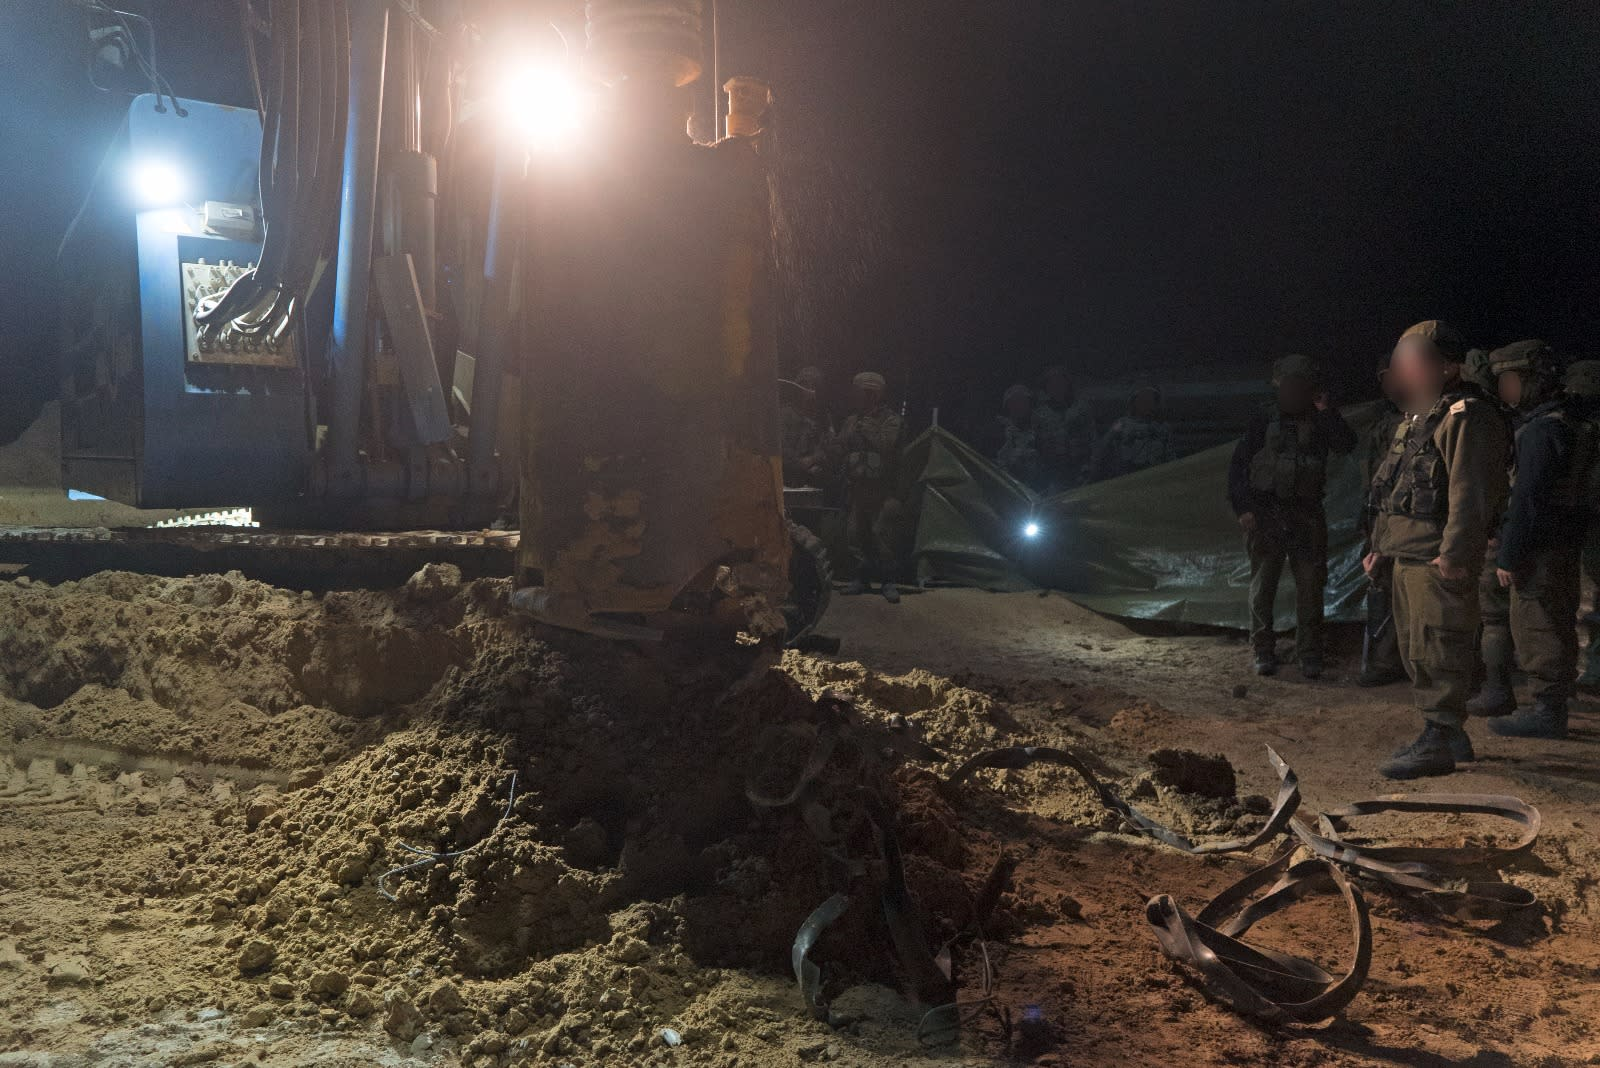 IDF forces destroy a cross-border Hamas tunnel on December 9, 2017. (IDF SPOKESMAN'S UNIT)